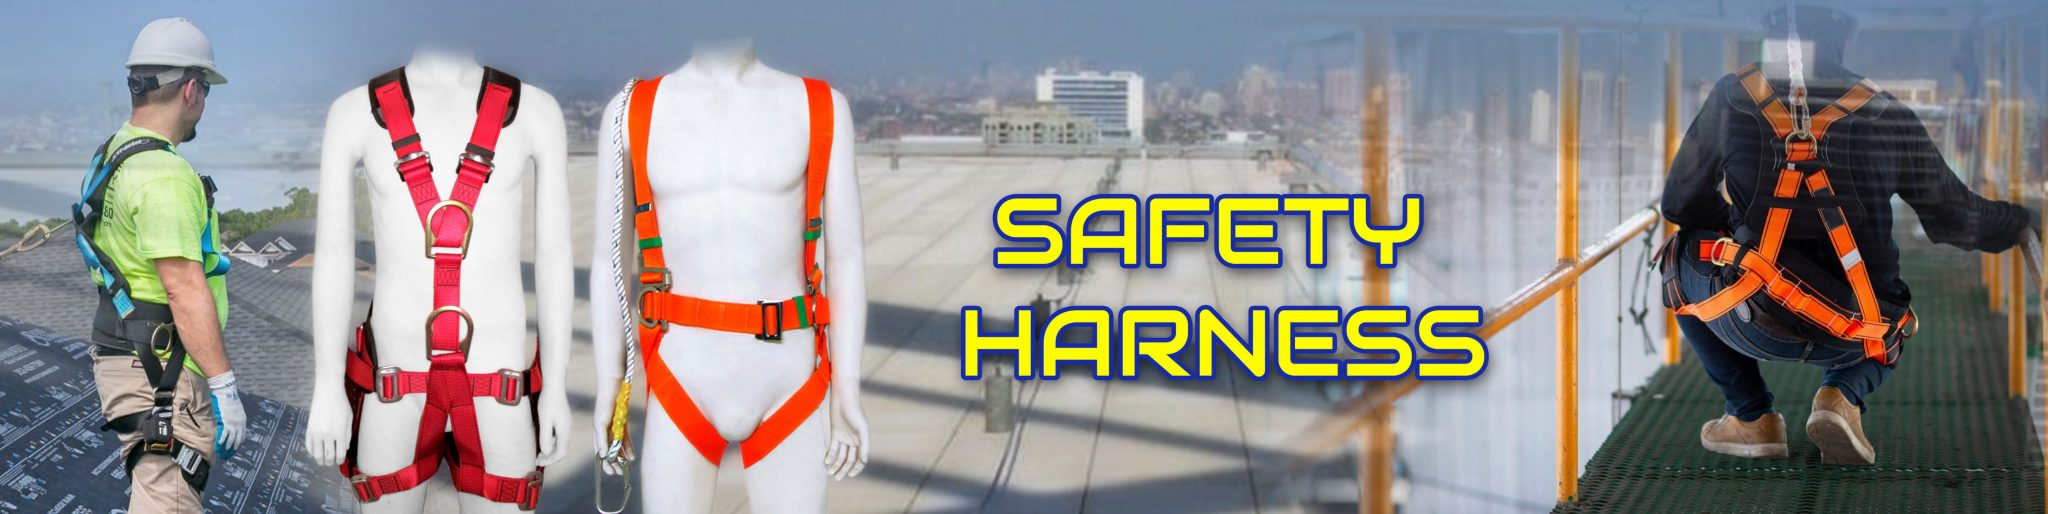 Harness-scaled